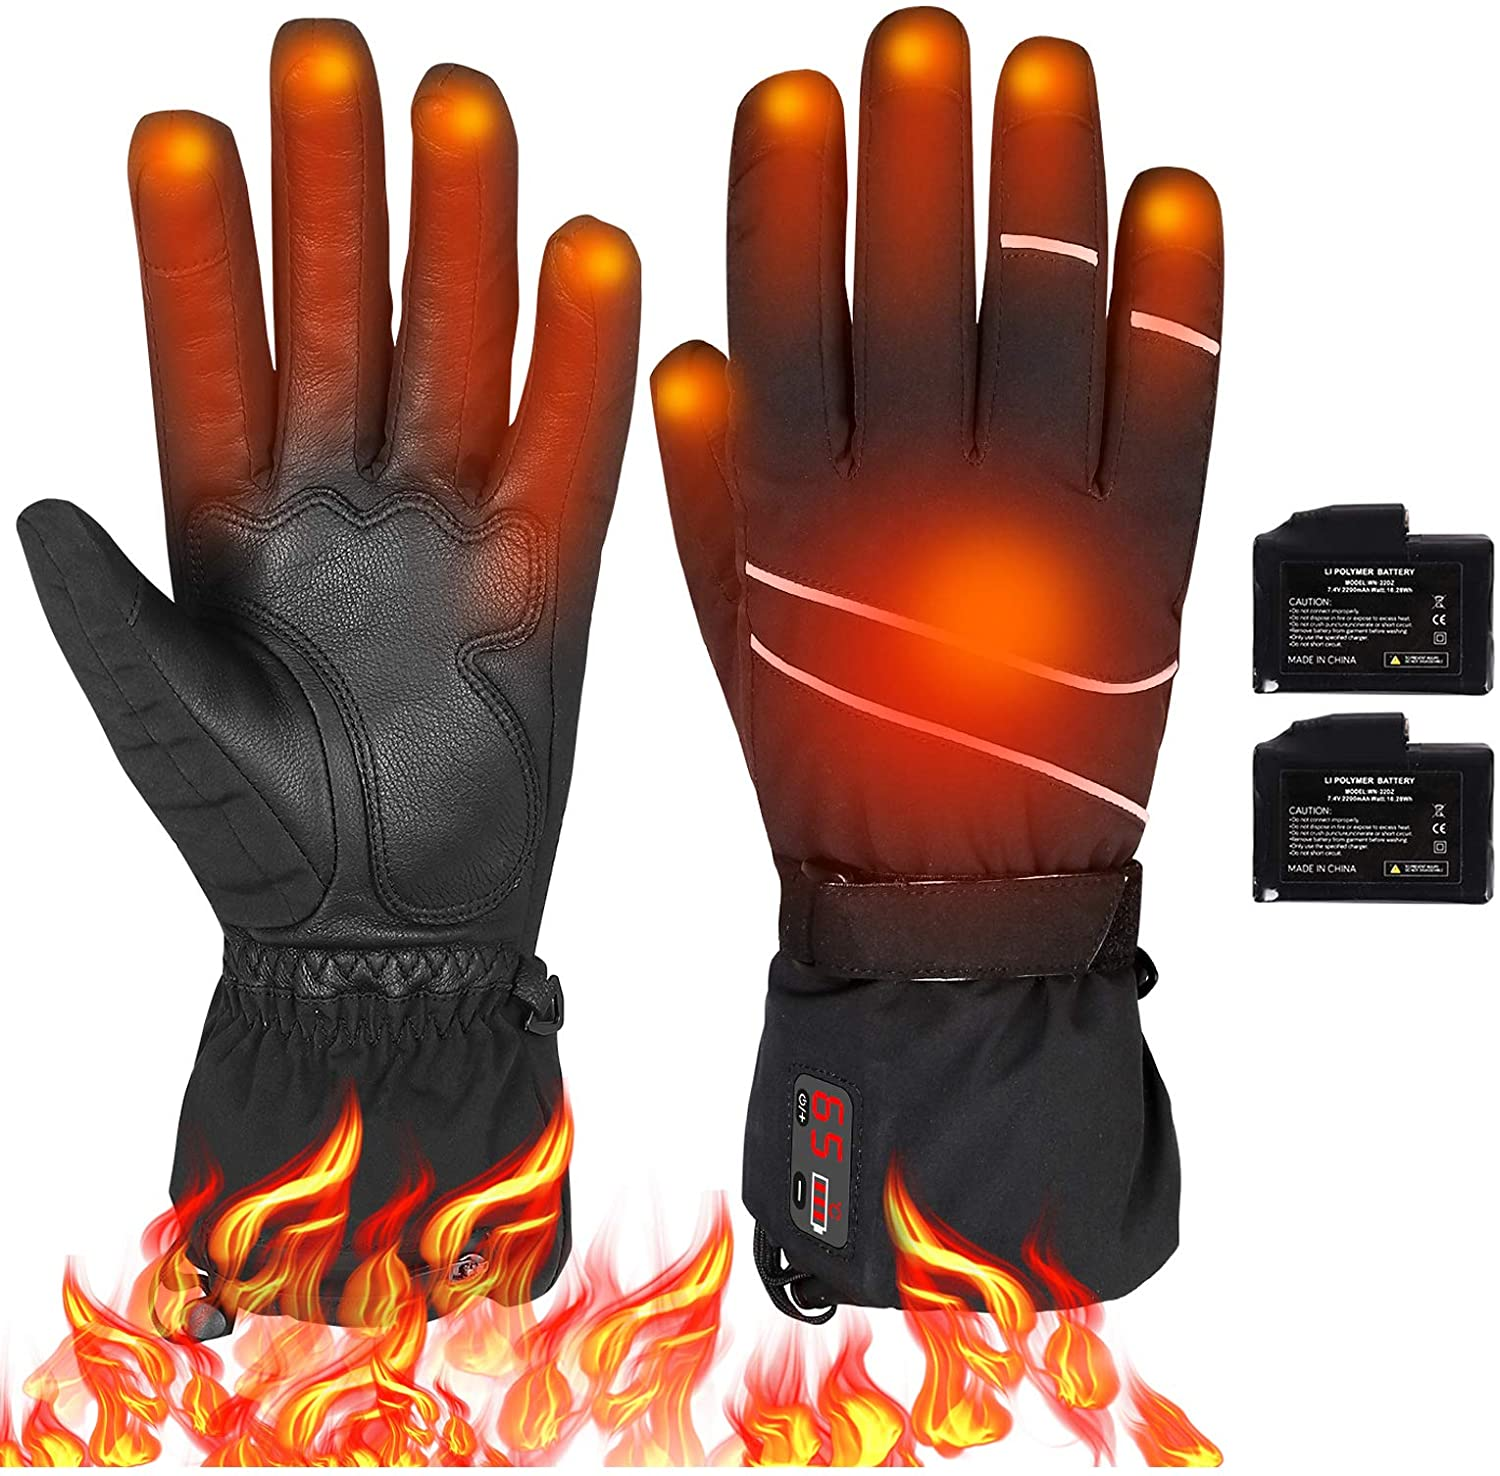 Unisex Electric Heating Gloves Winter Hands Warm Waterproof Thermal Outdoor Motorcycle Skiing Hiking  Climbing  Winter Gloves